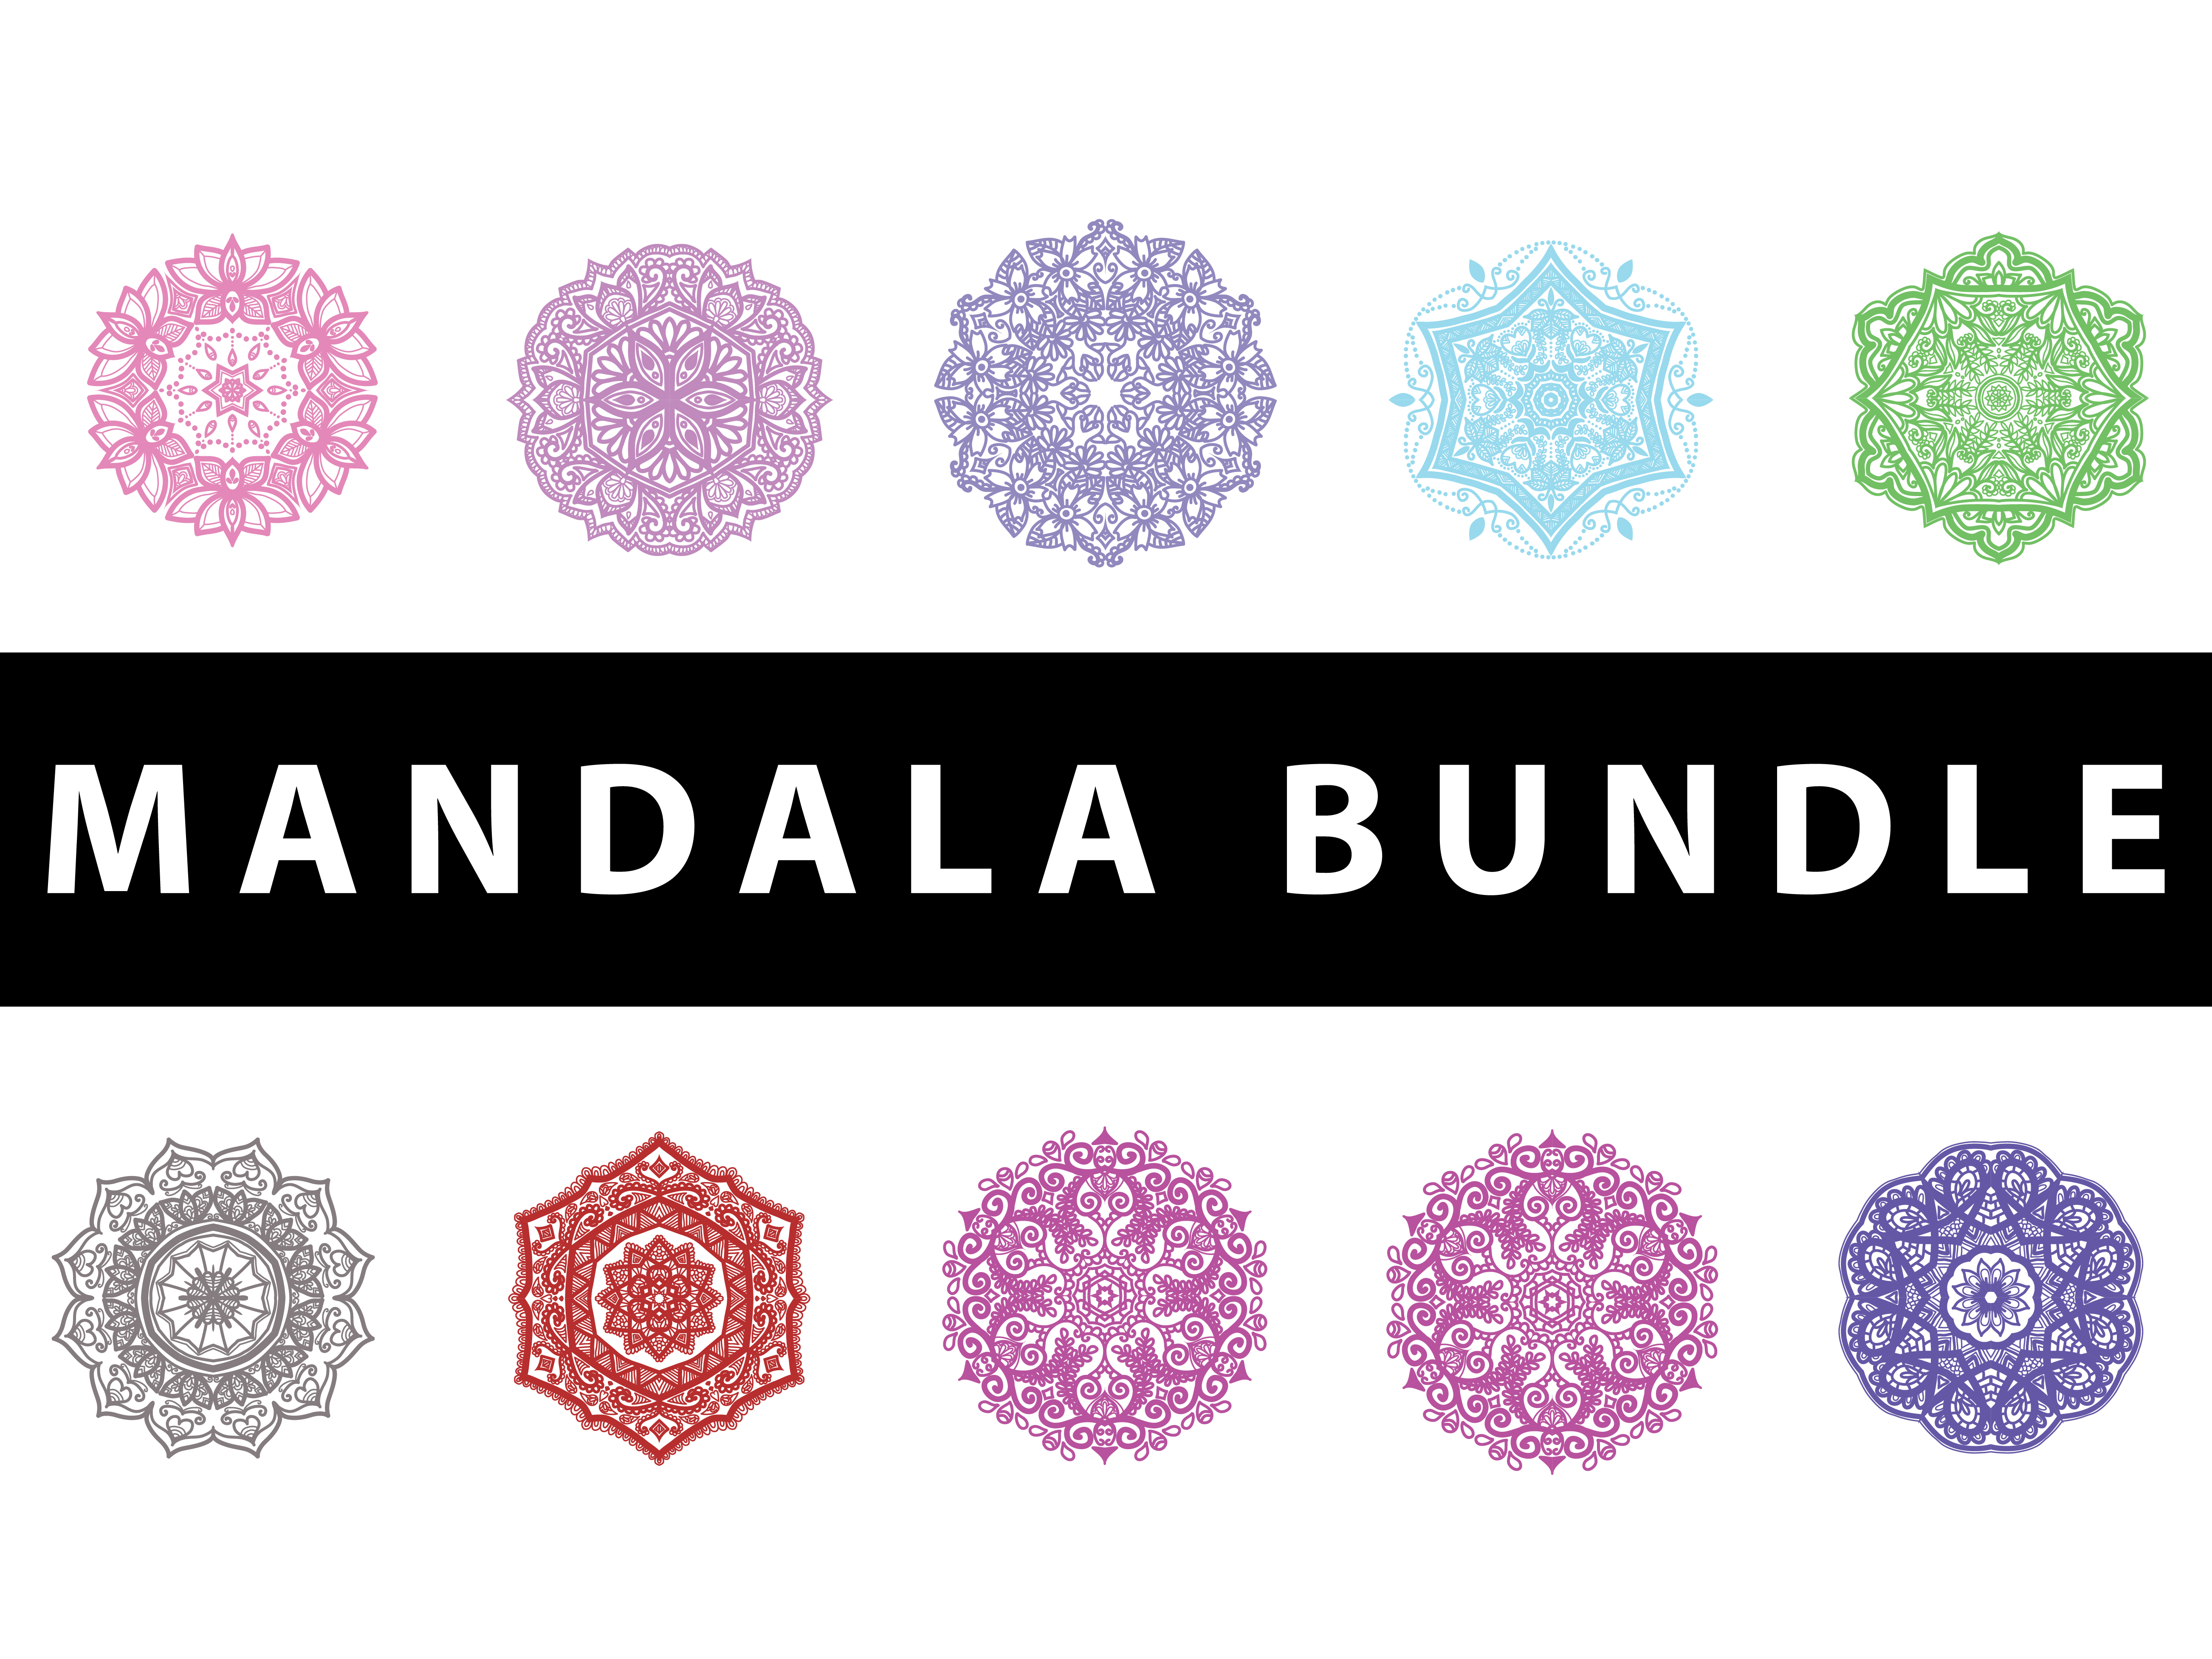 Download Free Bundle 10 Mandala Pattern Design Graphic By Redsugardesign for Cricut Explore, Silhouette and other cutting machines.